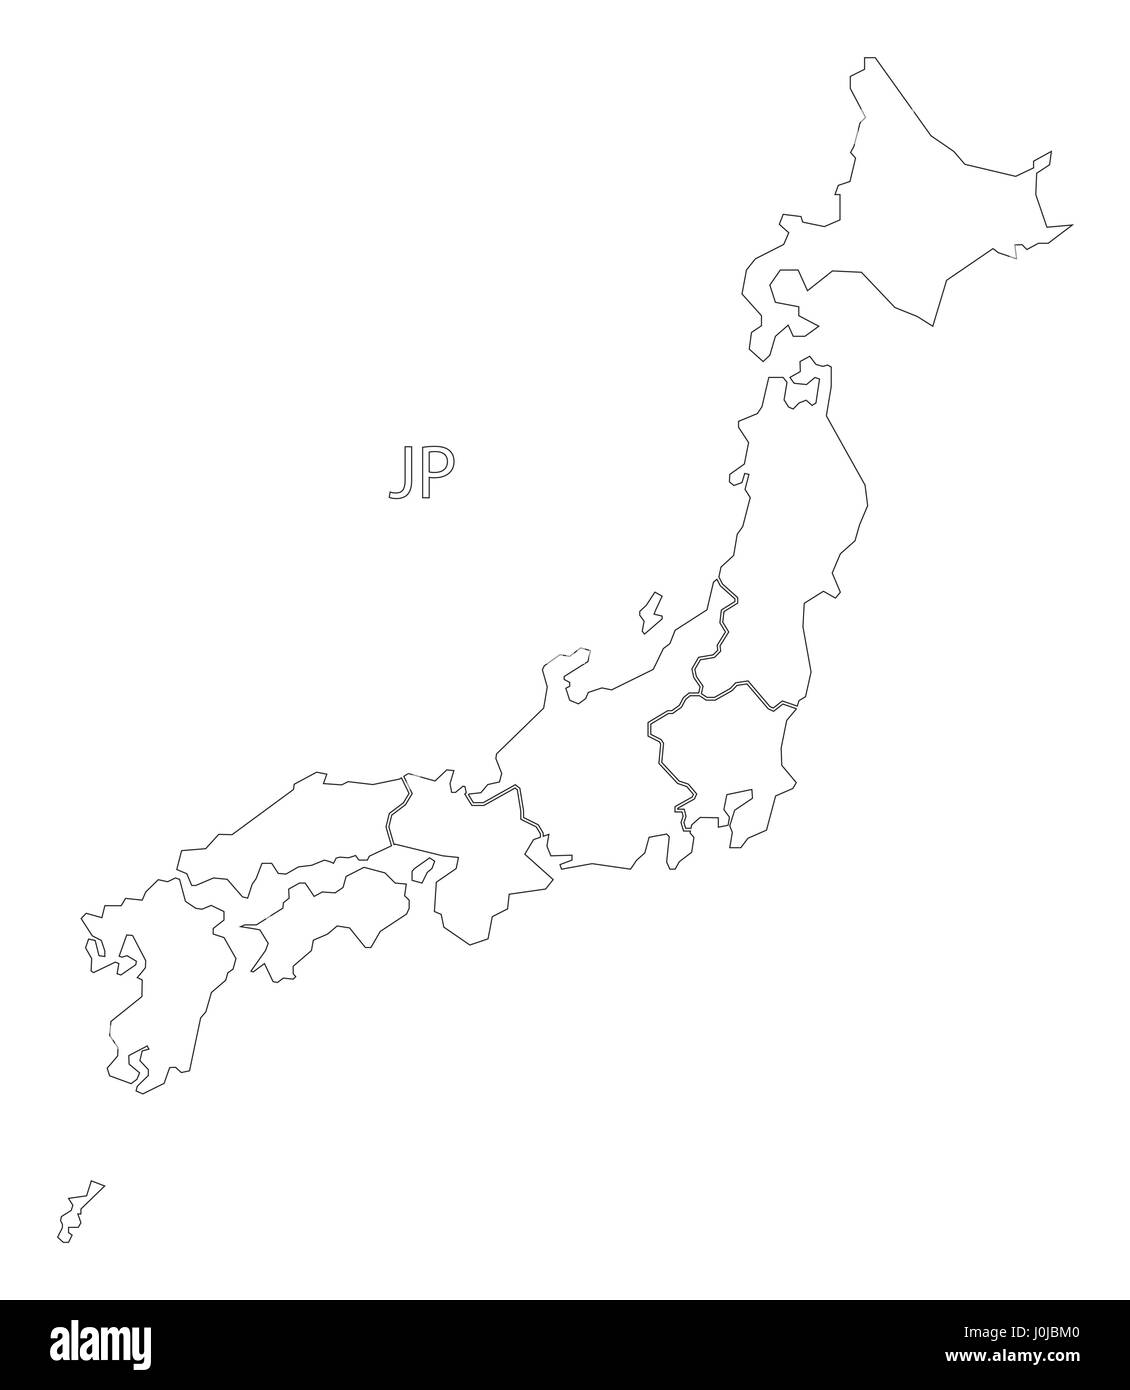 Japan Outline Silhouette Map Illustration With Regions Stock - Japan map regions